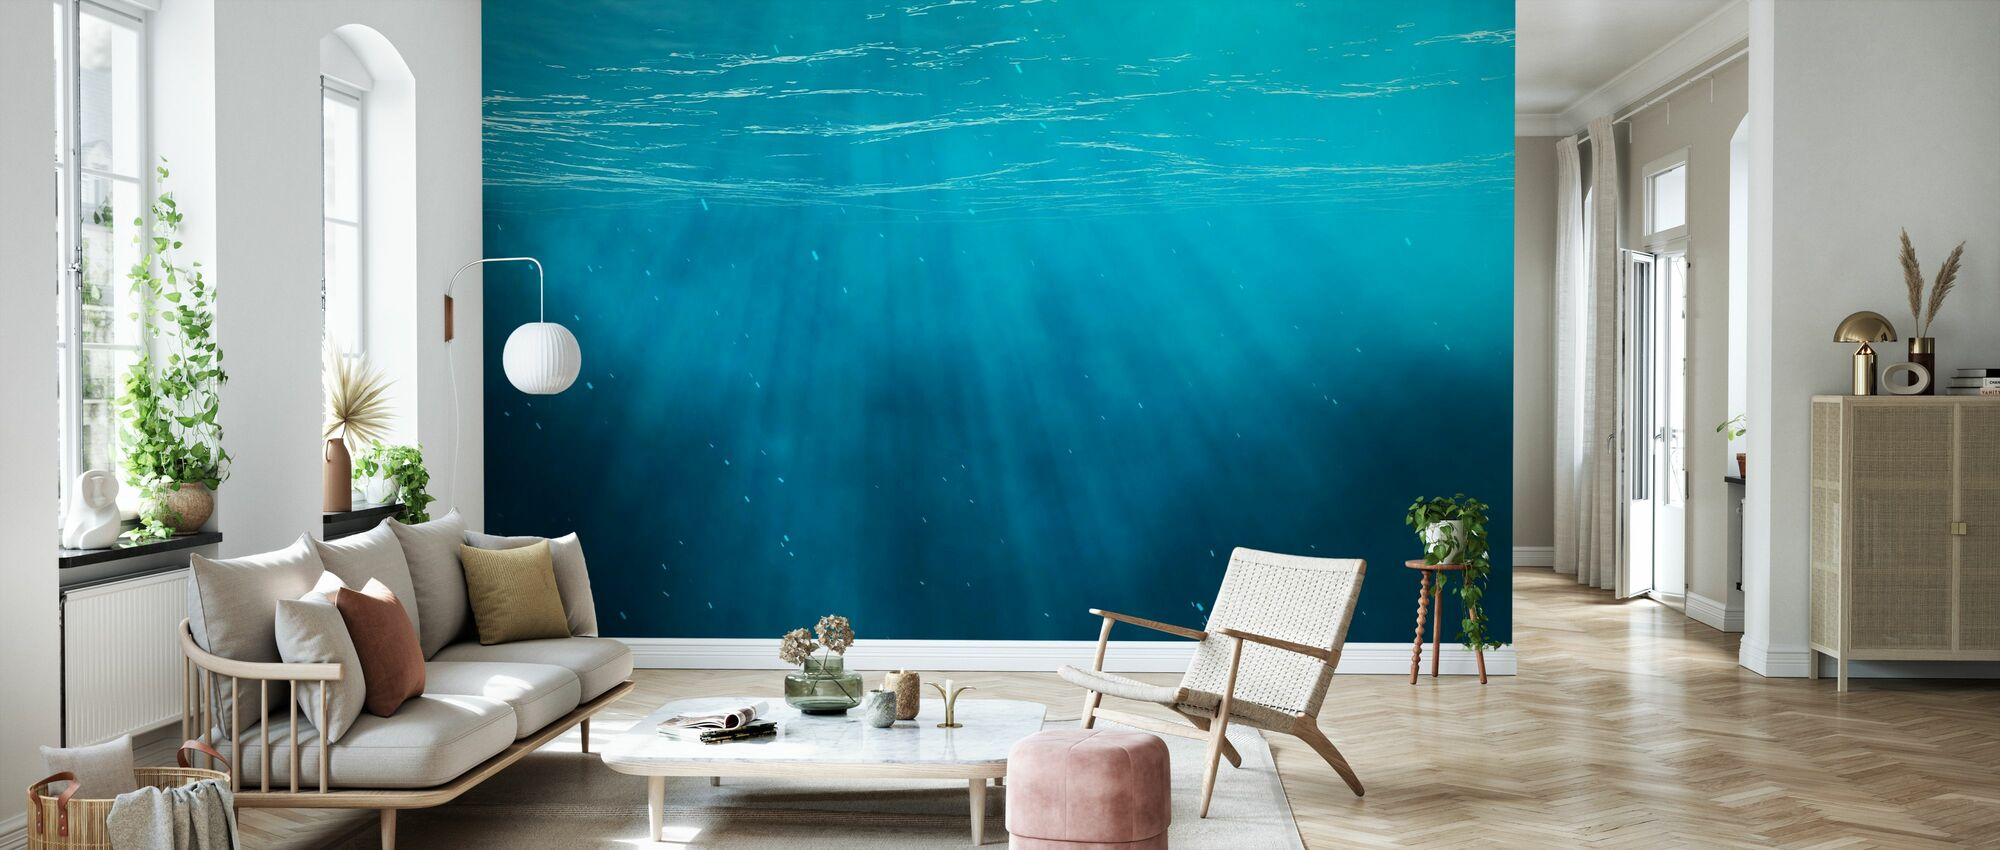 Underwater - Wallpaper - Living Room